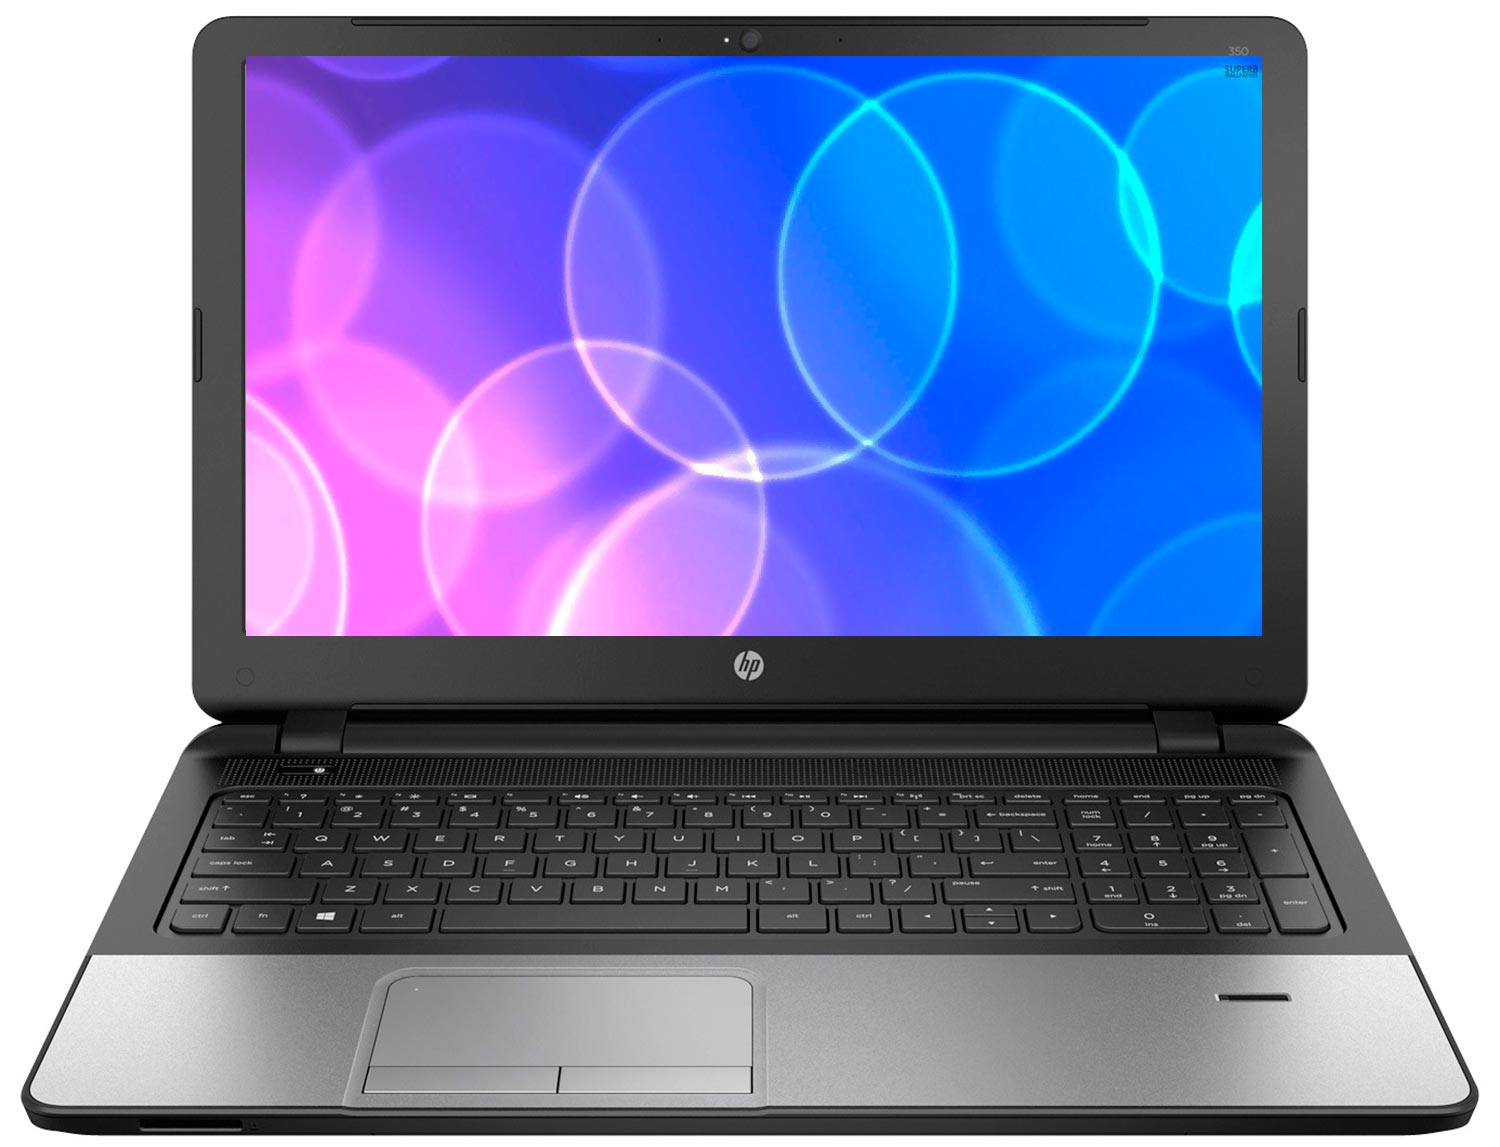 Ноутбук HP ProBook 350 G2 15.6'', Intel Core i5-5200U, 2.2GHz, 4Gb, 500Gb HDD (N0Y43ES)